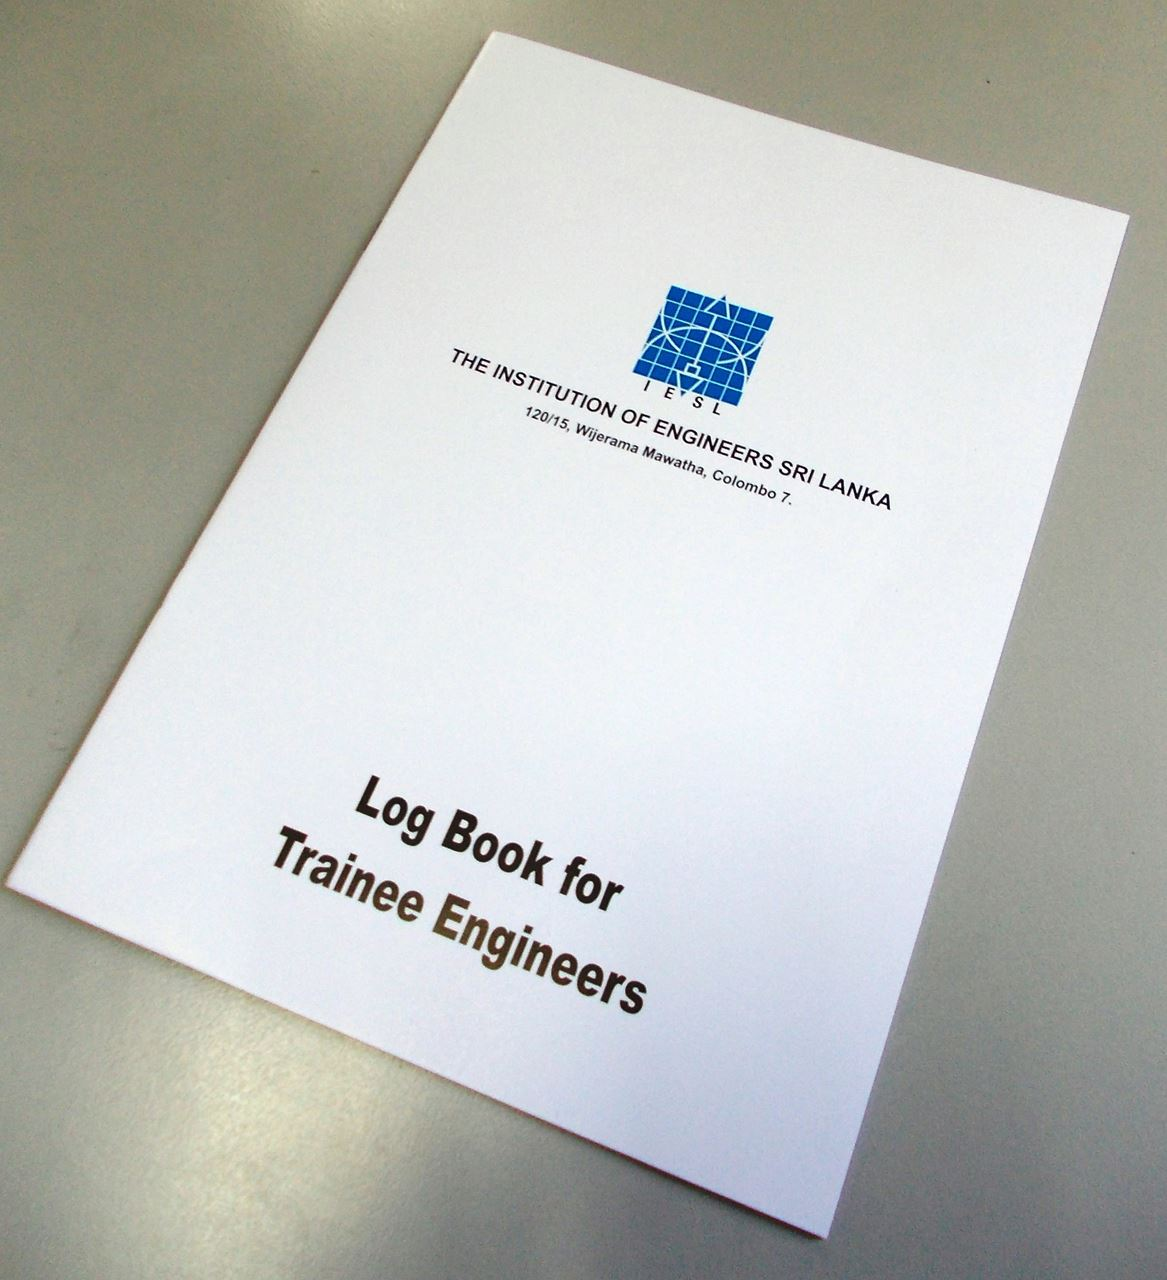 Log Book for Trainee Engineers